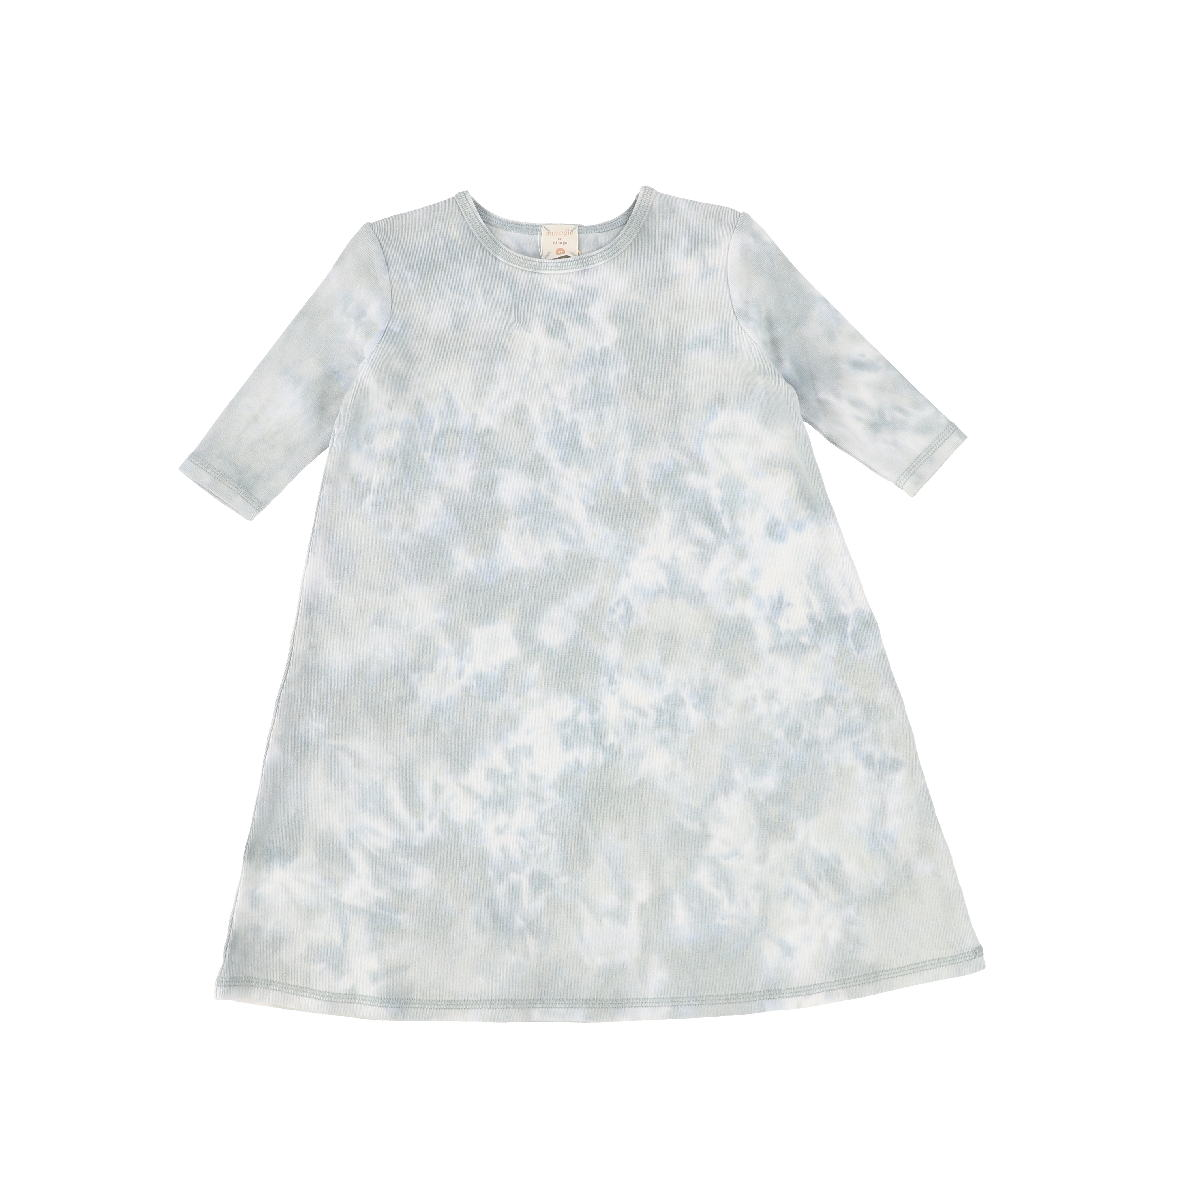 Analogie Seafoam Watercolor Three Quarter Sleeve Dress